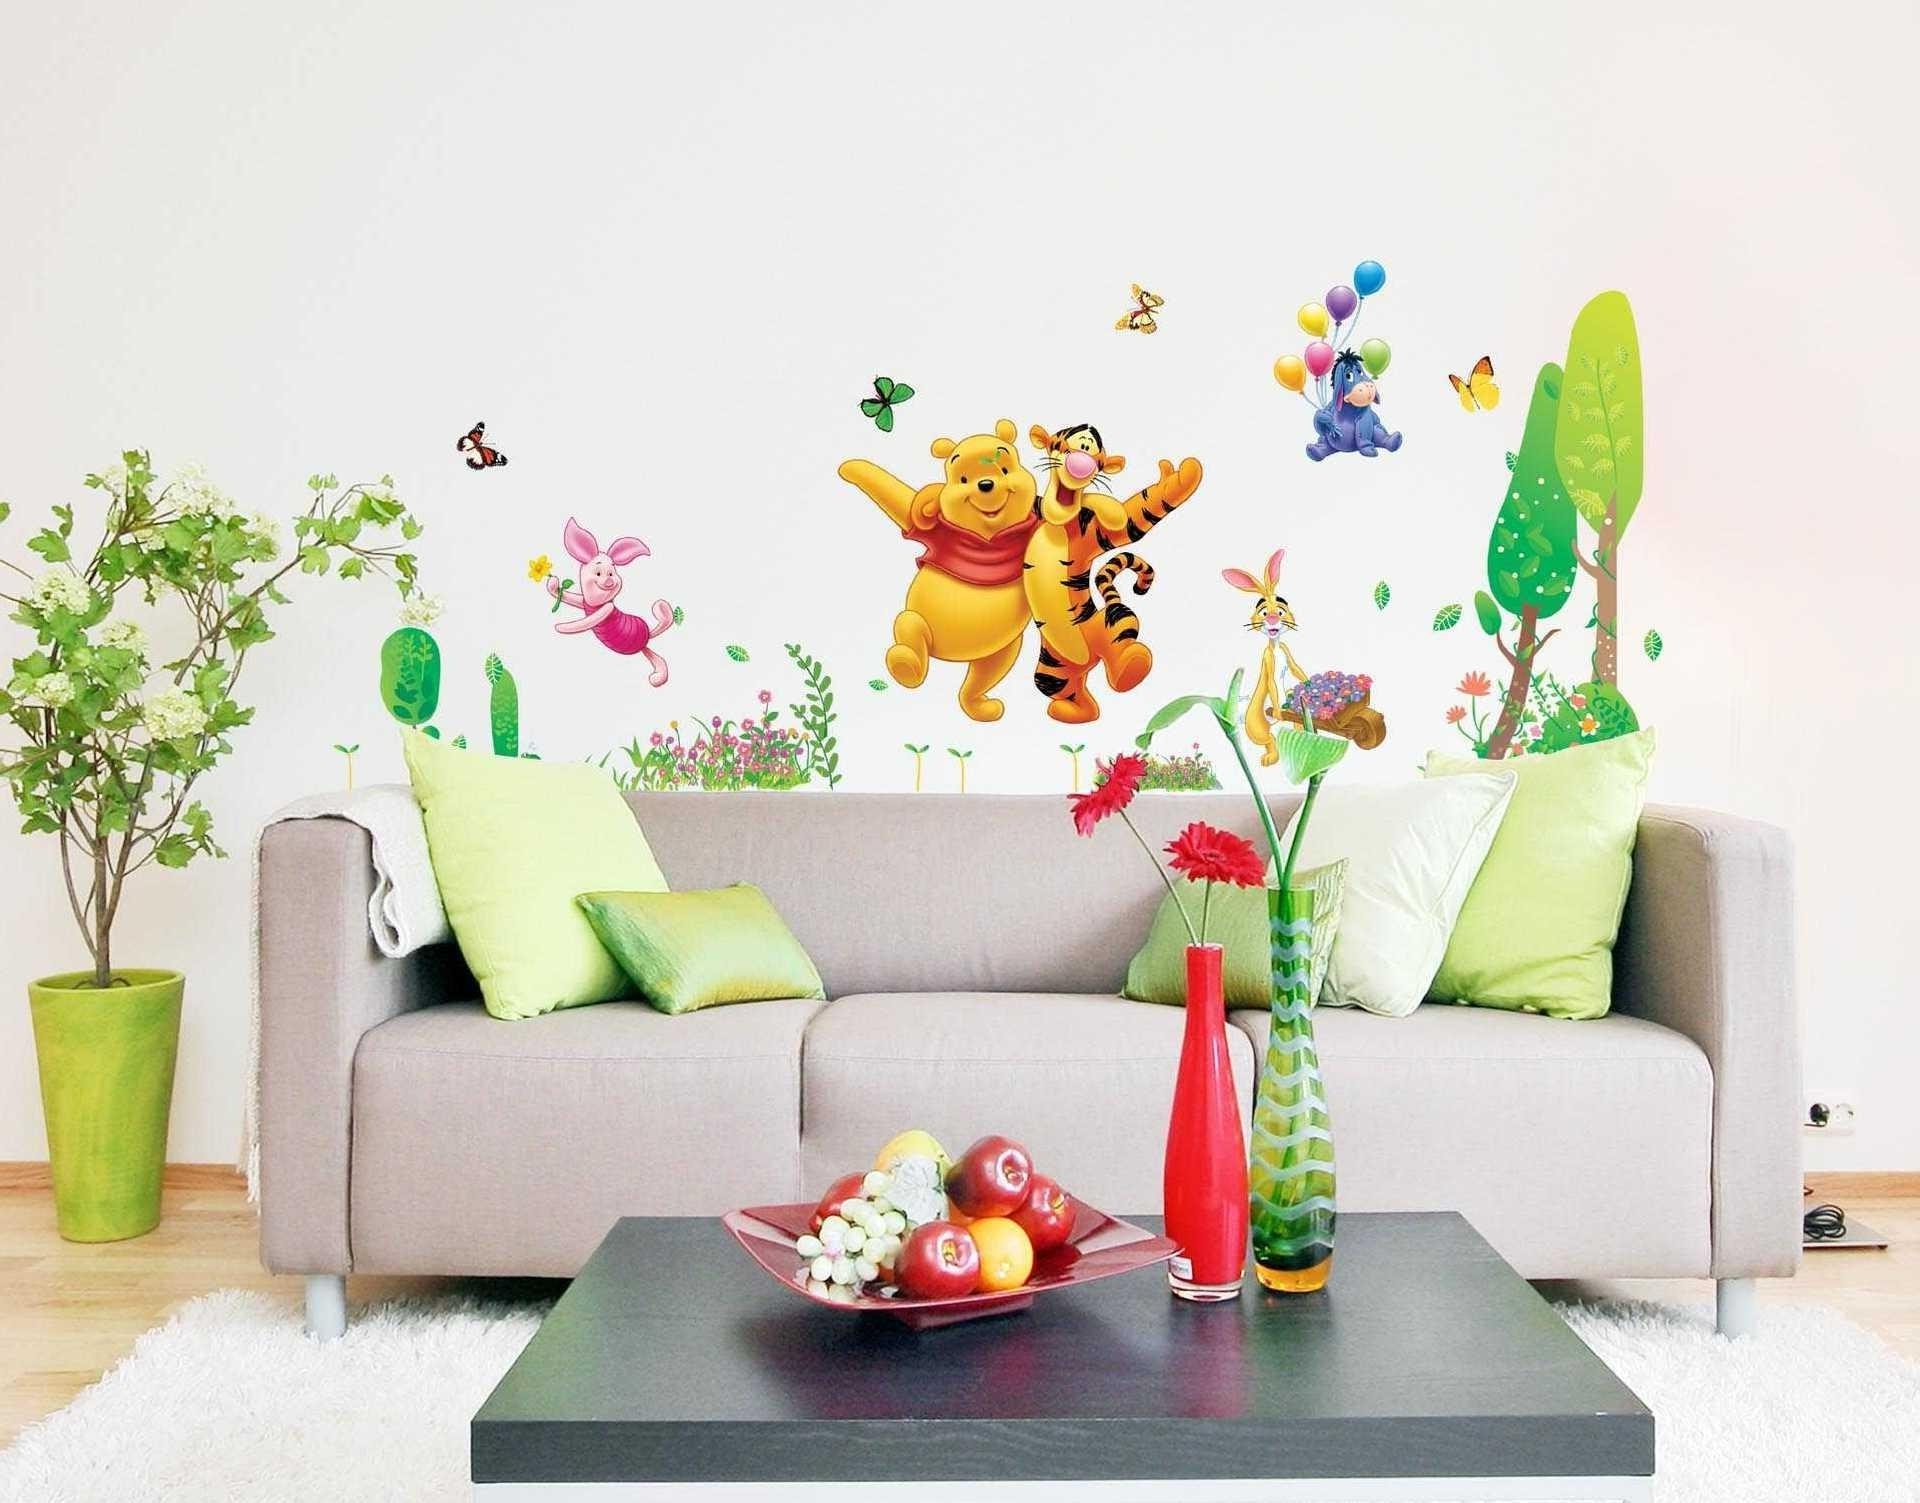 Well Liked The Pooh And Jumping Tigger Wall Sticker Inside Winnie The Pooh Wall Decor (View 12 of 15)